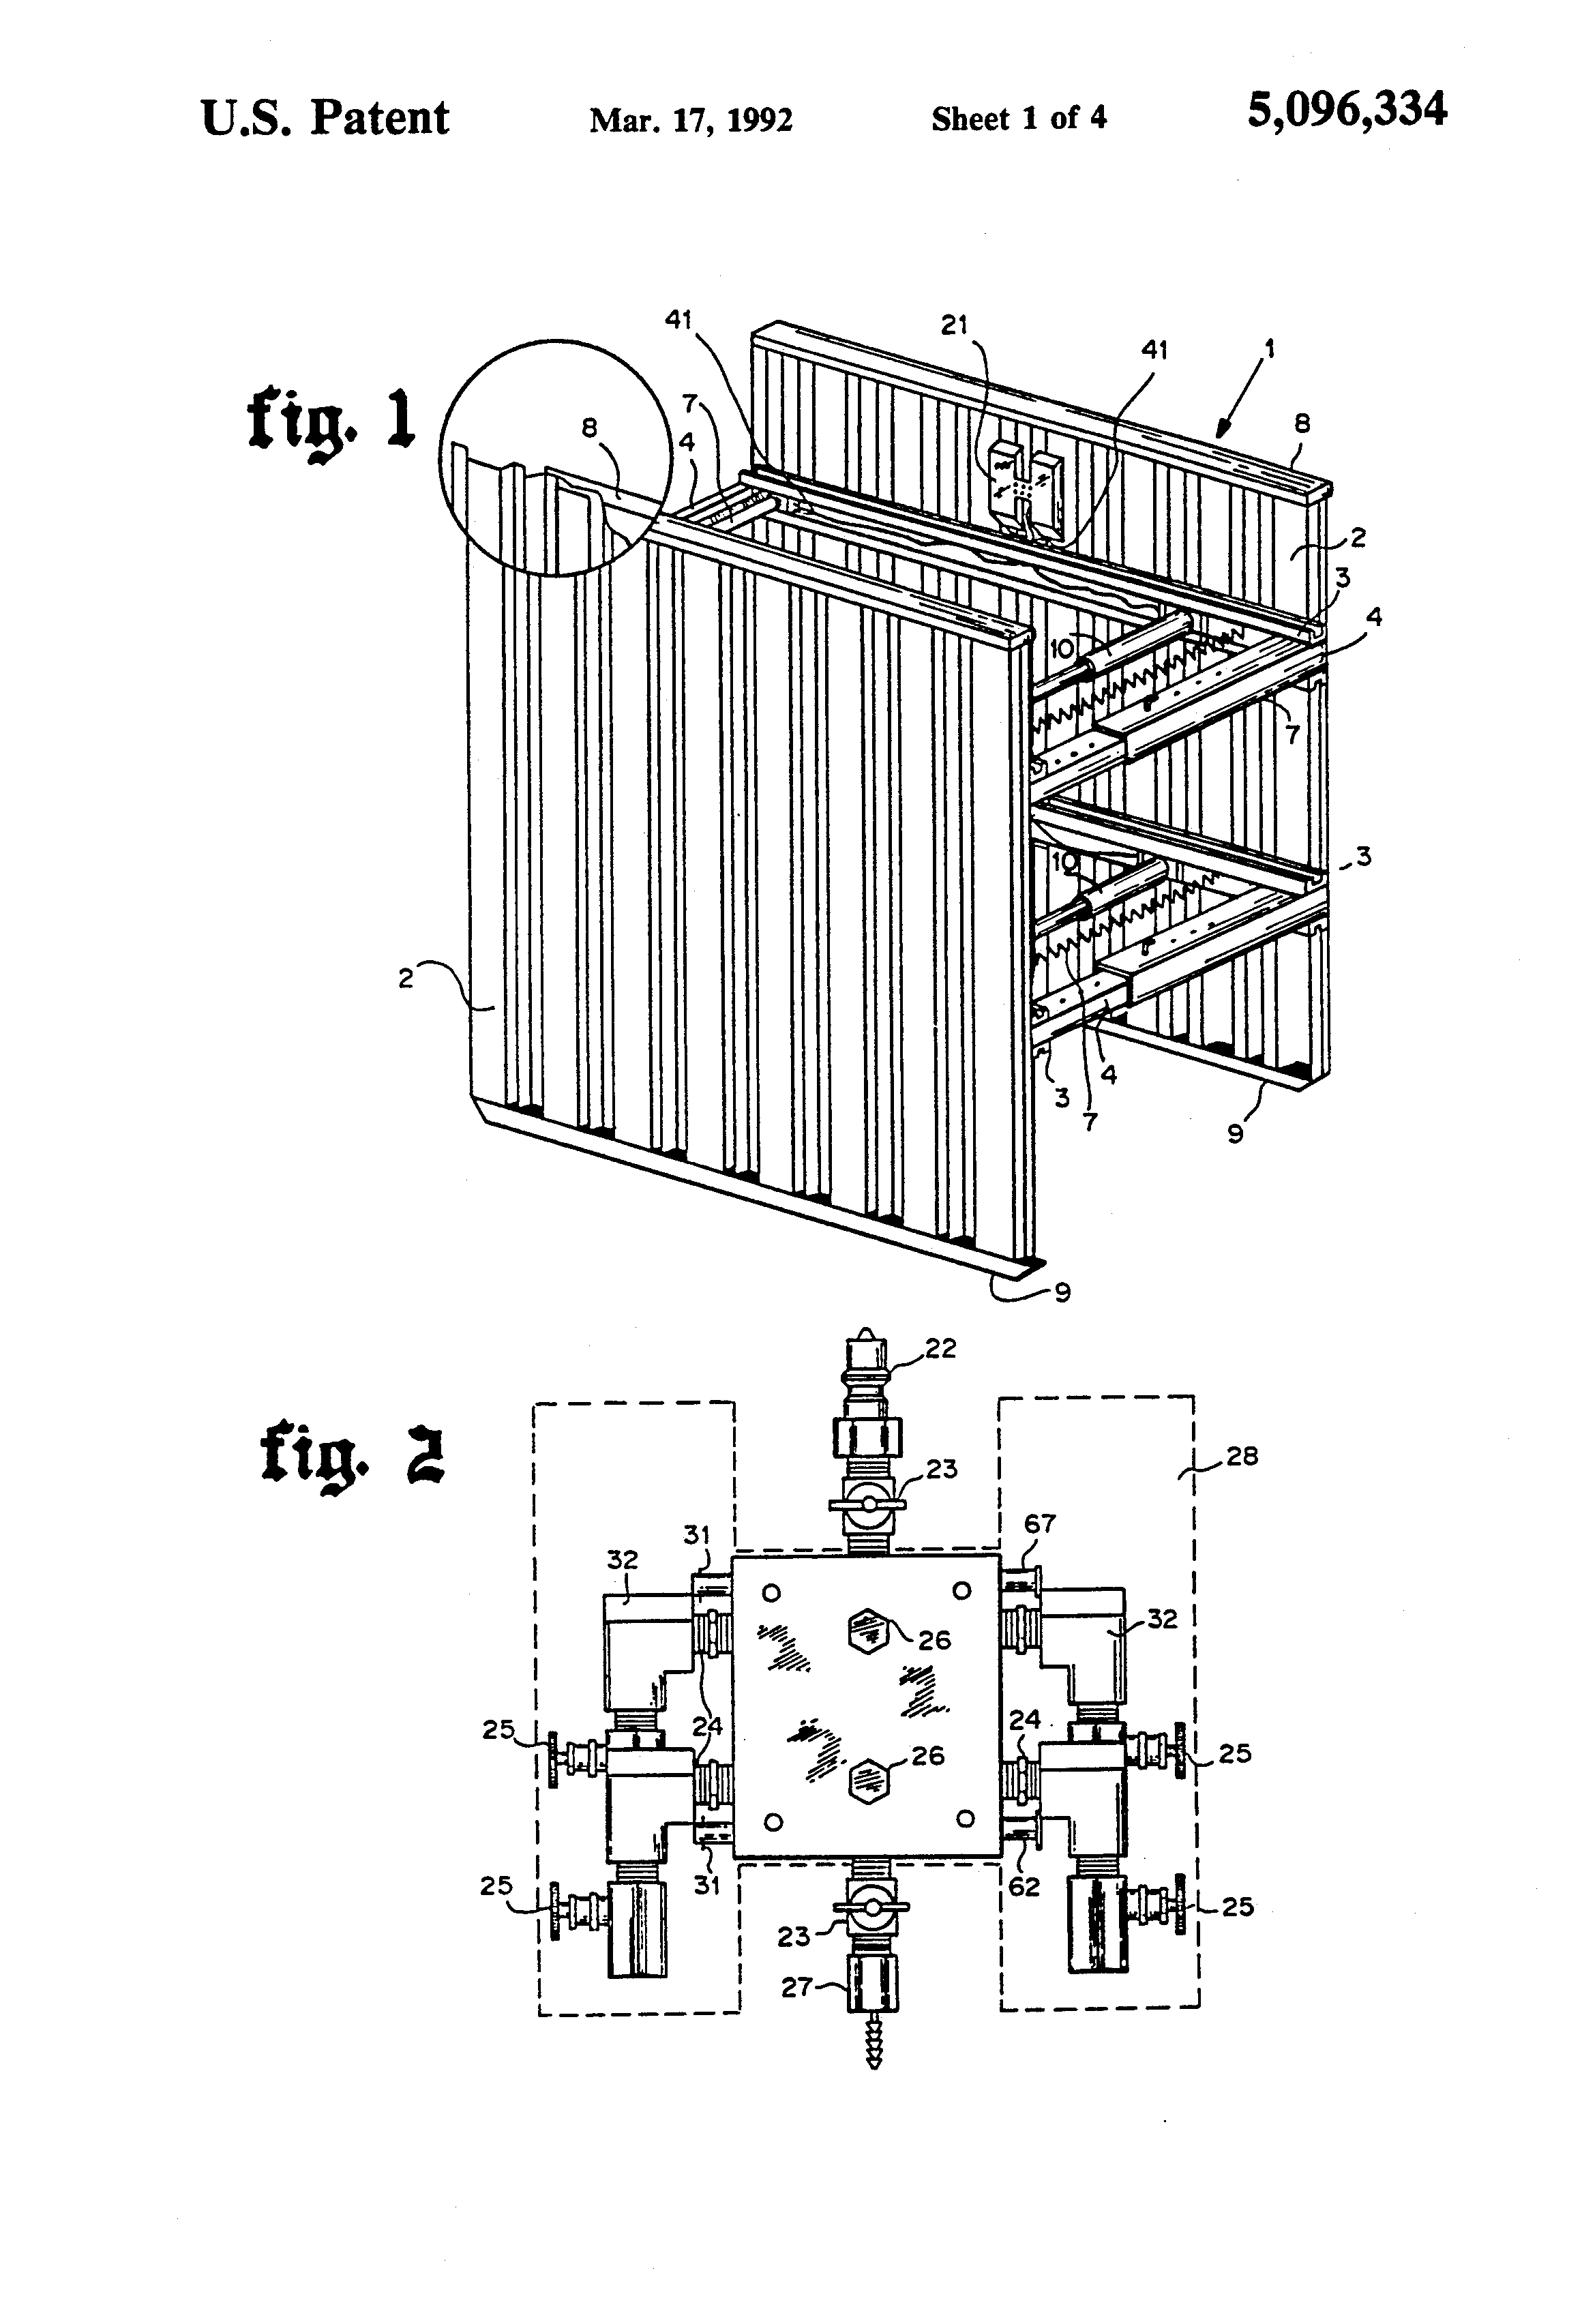 US4655415 in addition US6881023 furthermore 2 together with US7677002 further As Built Engineering Drawing Petrochemical. on structural skid drawing